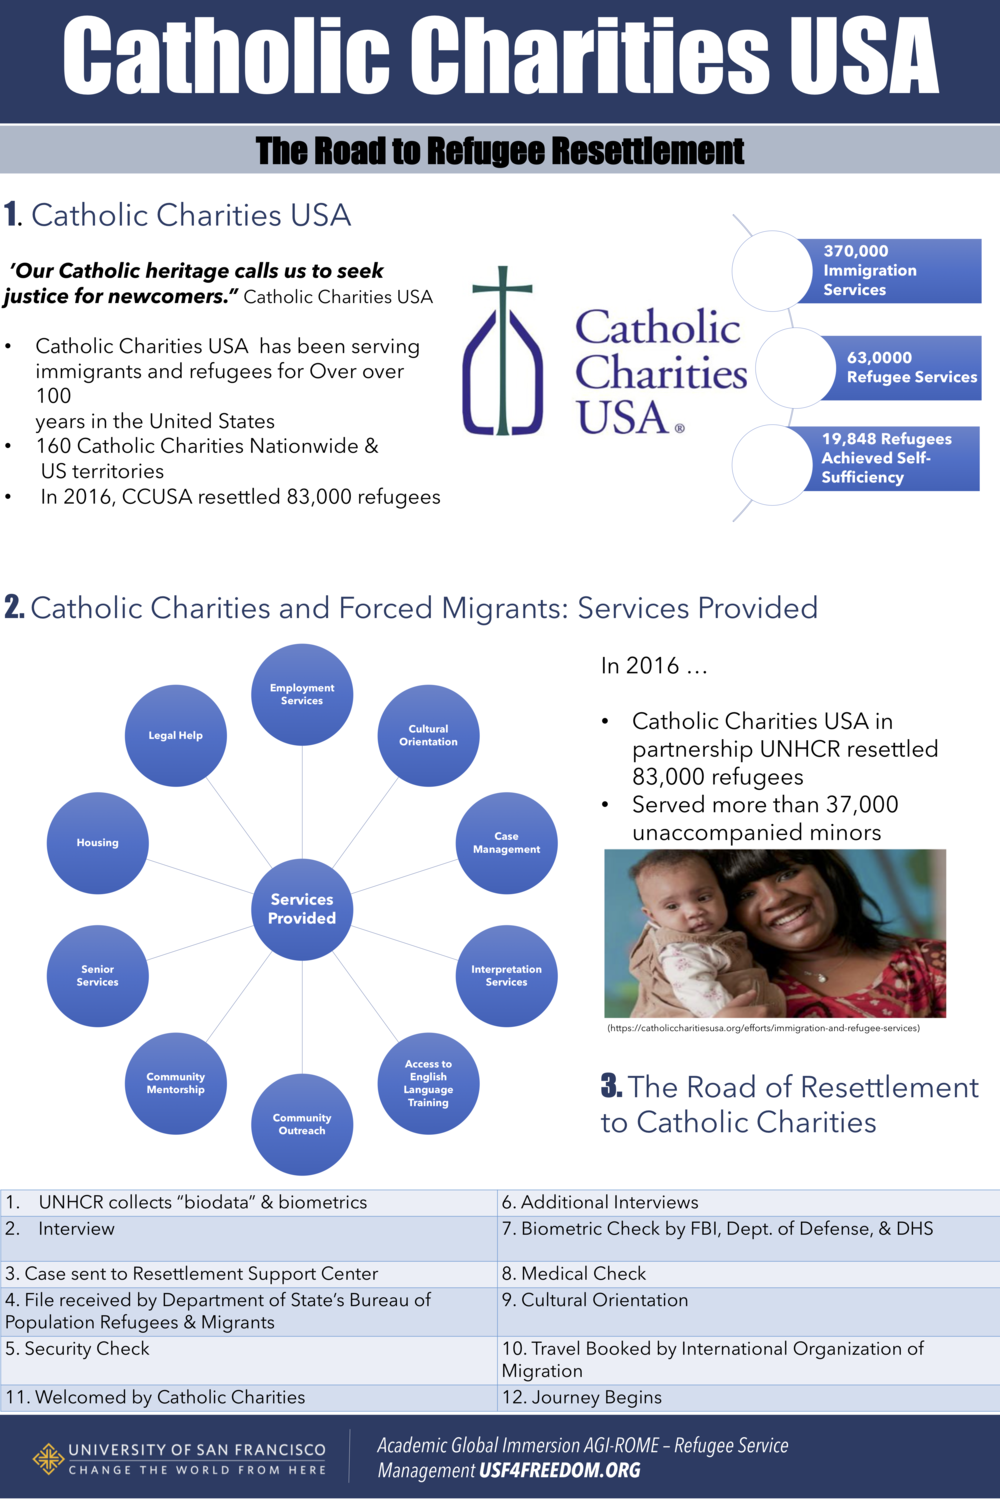 5 CATHOLIC CHARITIES USA.png